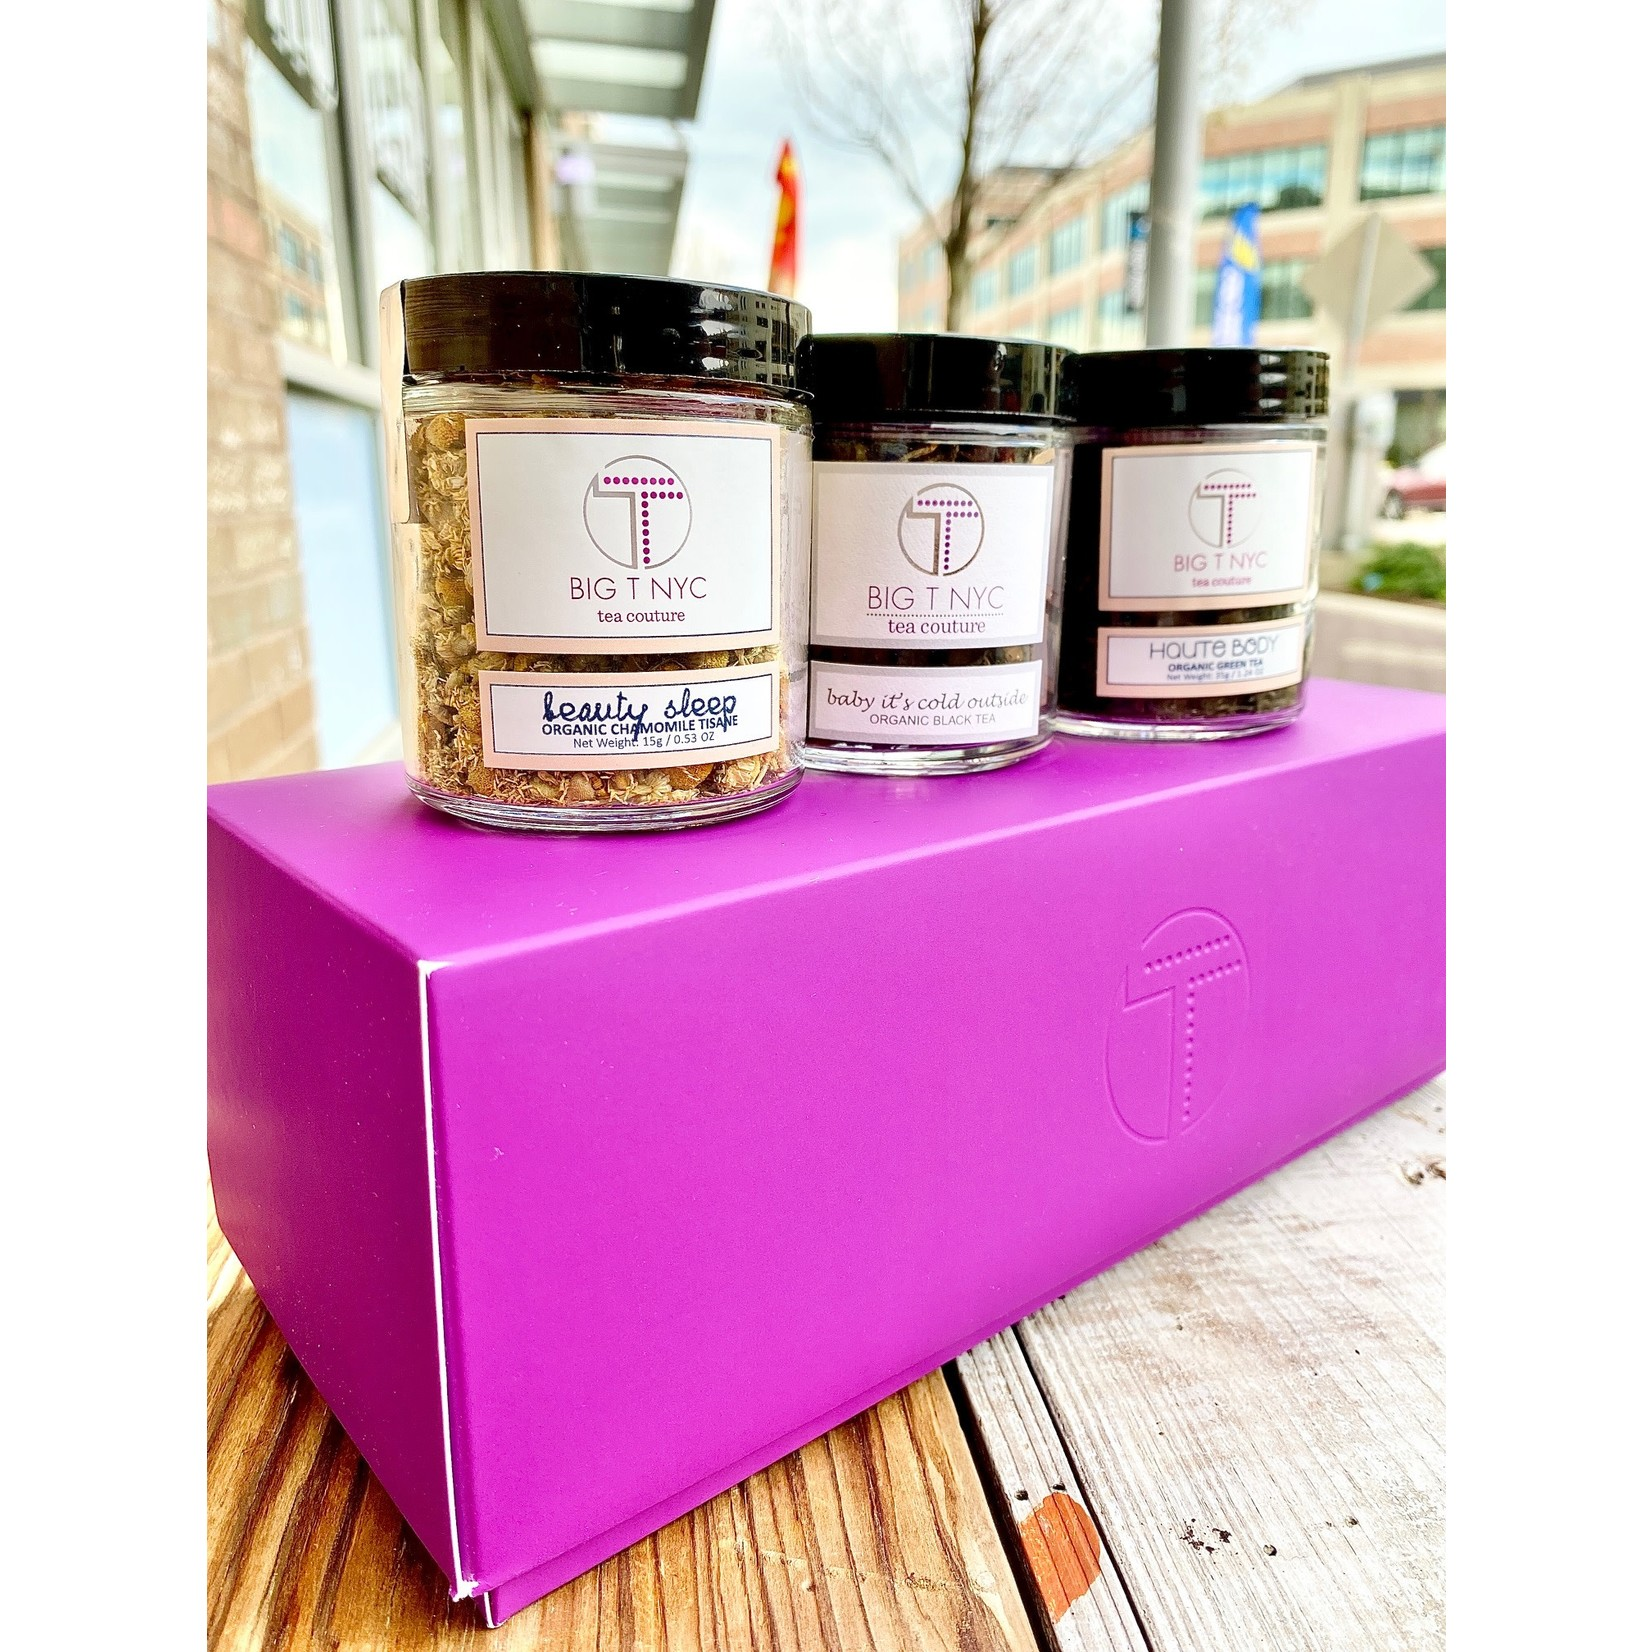 Big T NYC Organic Loose Leaf Tea Gift Set - Couture Collection